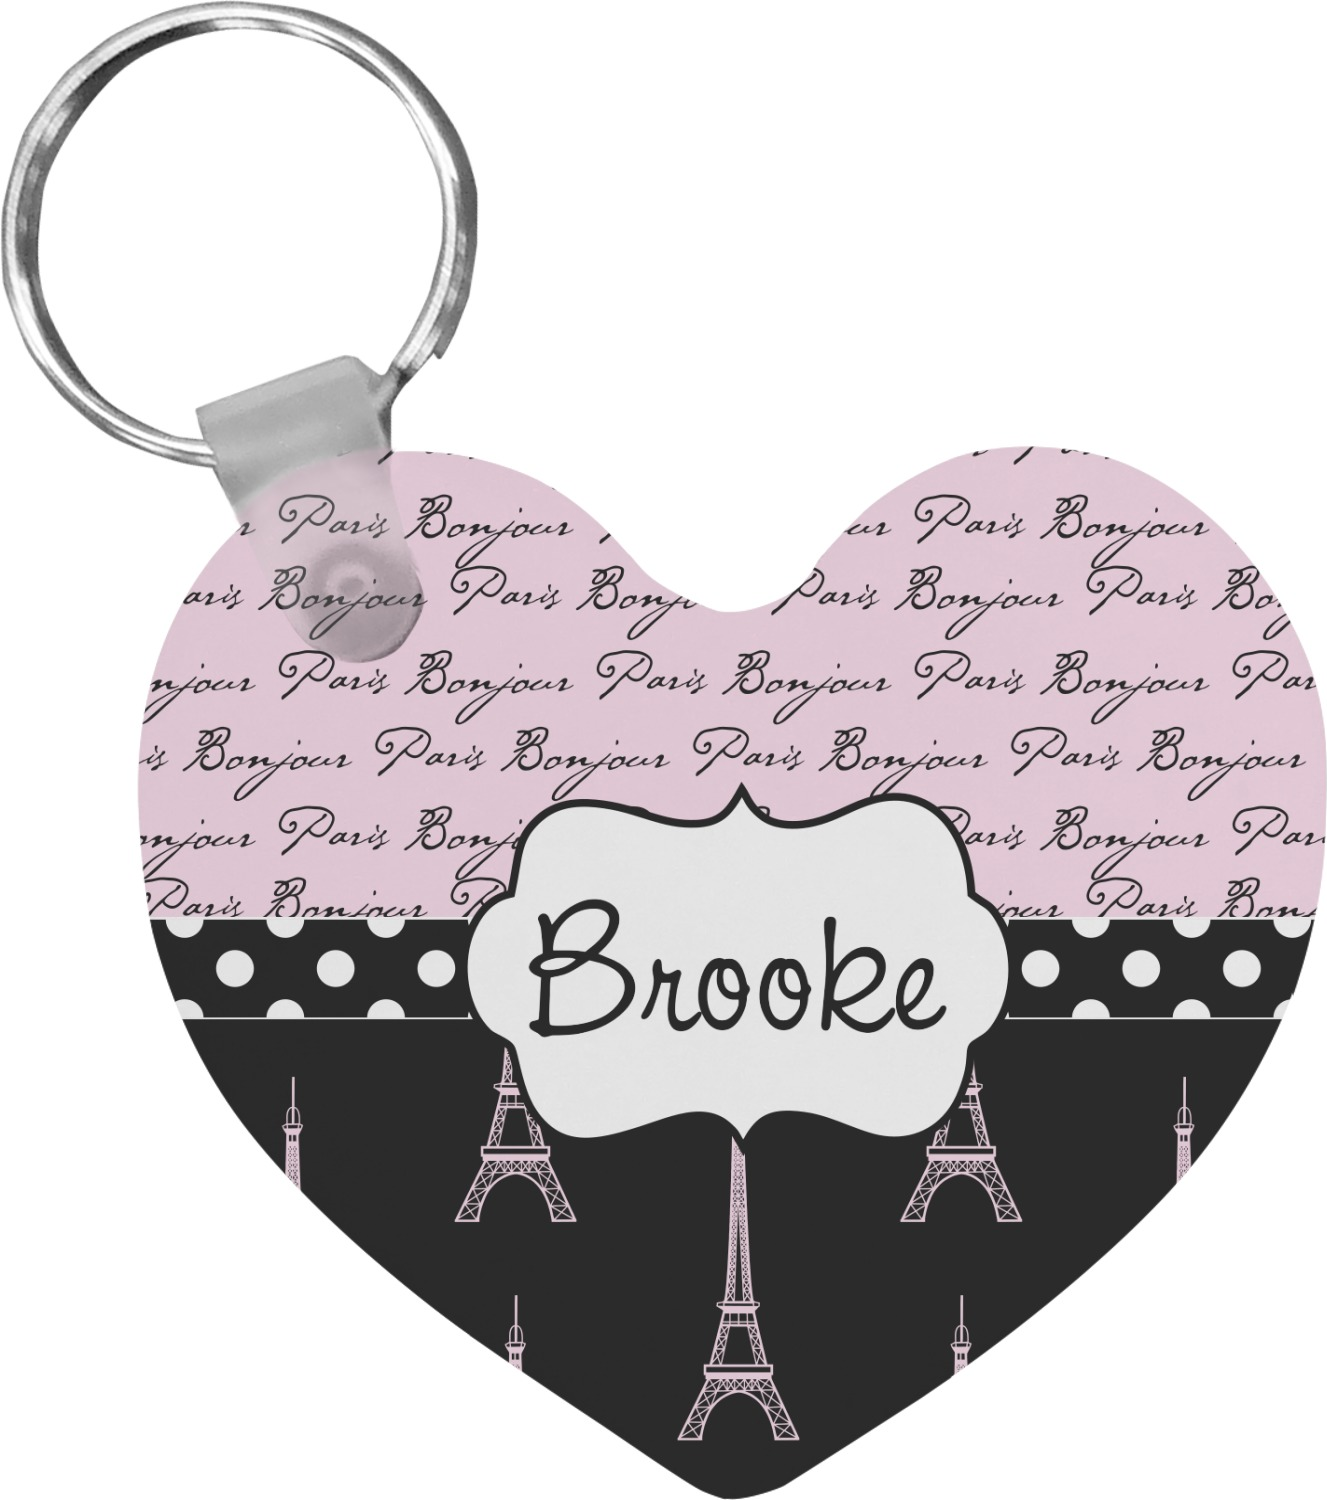 paris bonjour and eiffel tower heart keychain personalized